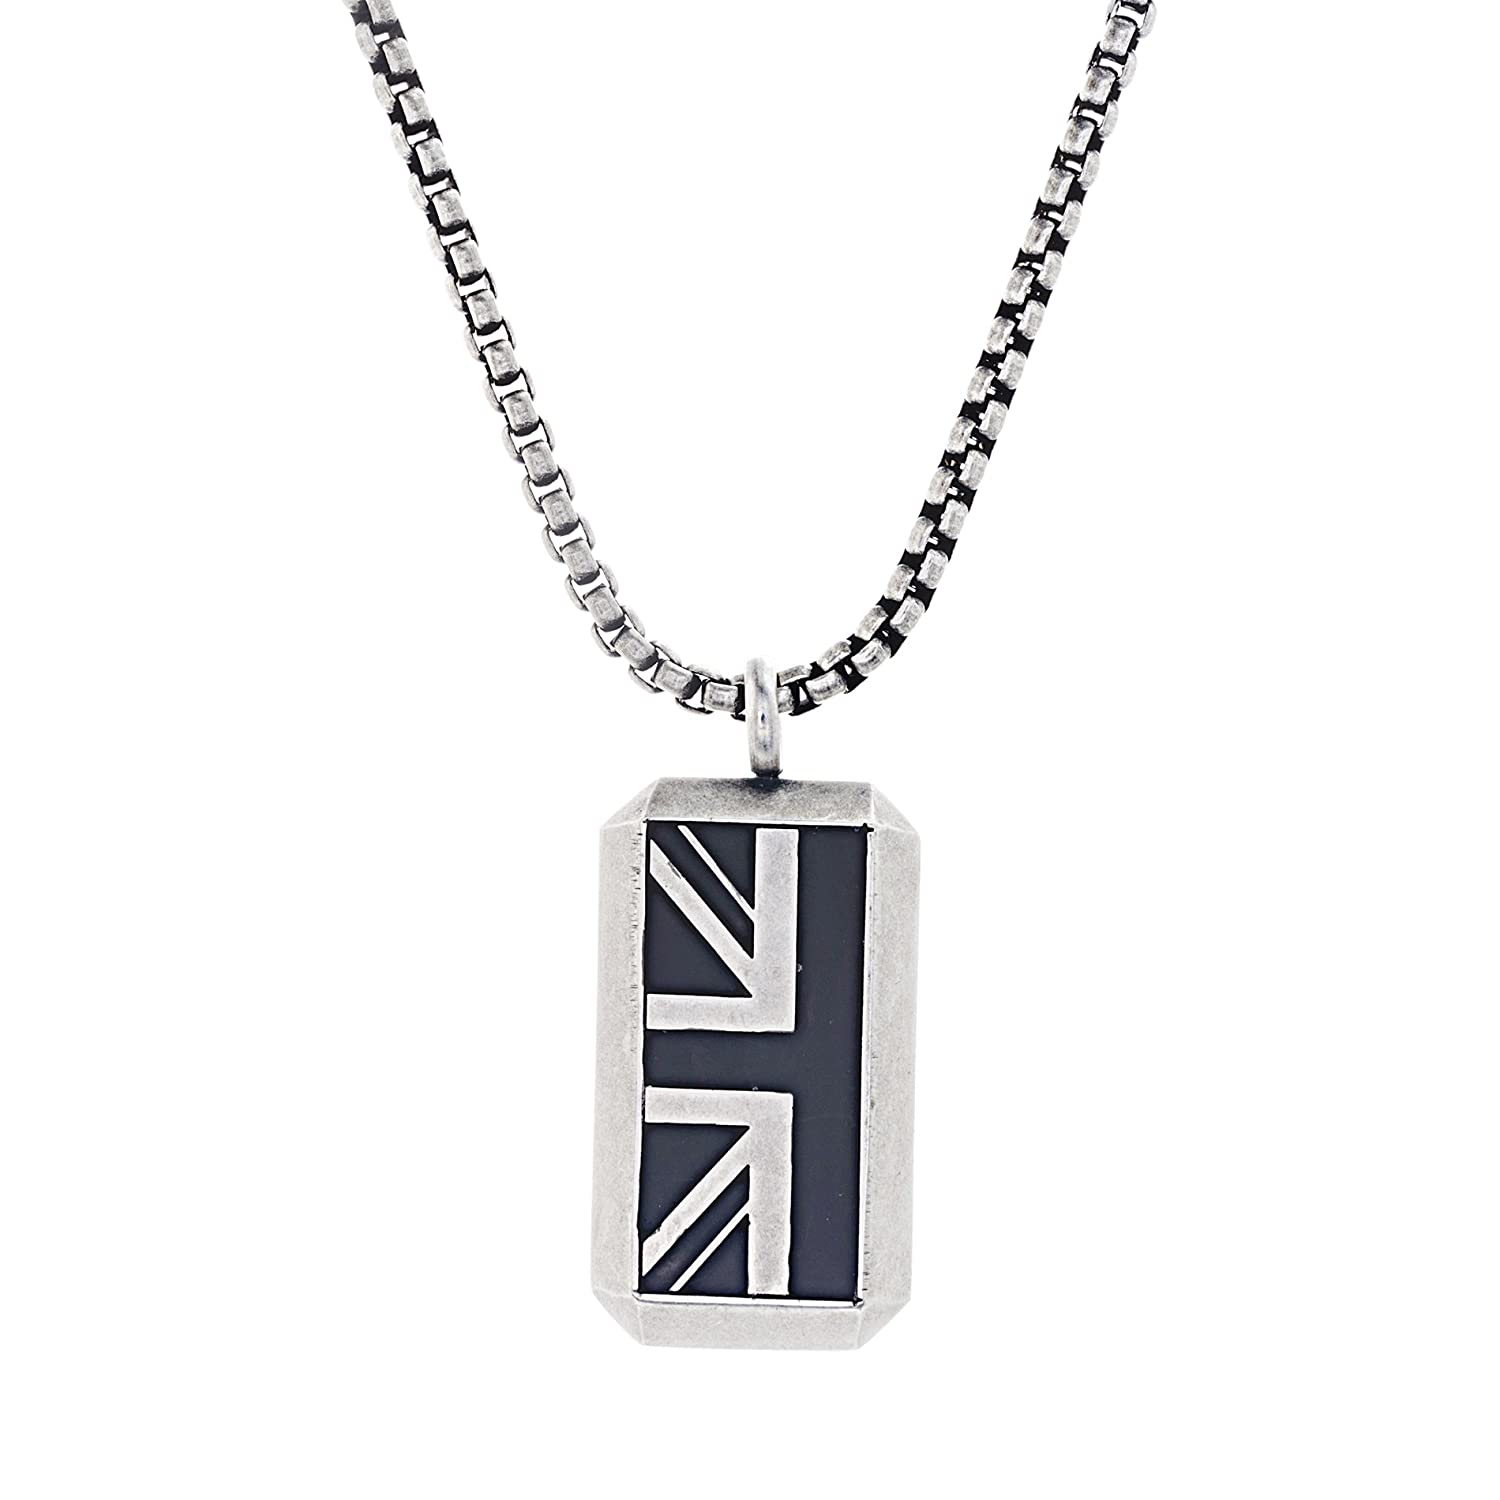 Ben Sherman Oxidized Men's Black Enamel British Flag Pendant Rolo Chain Necklace Nes Jewelry BSNS541024OX-EBK